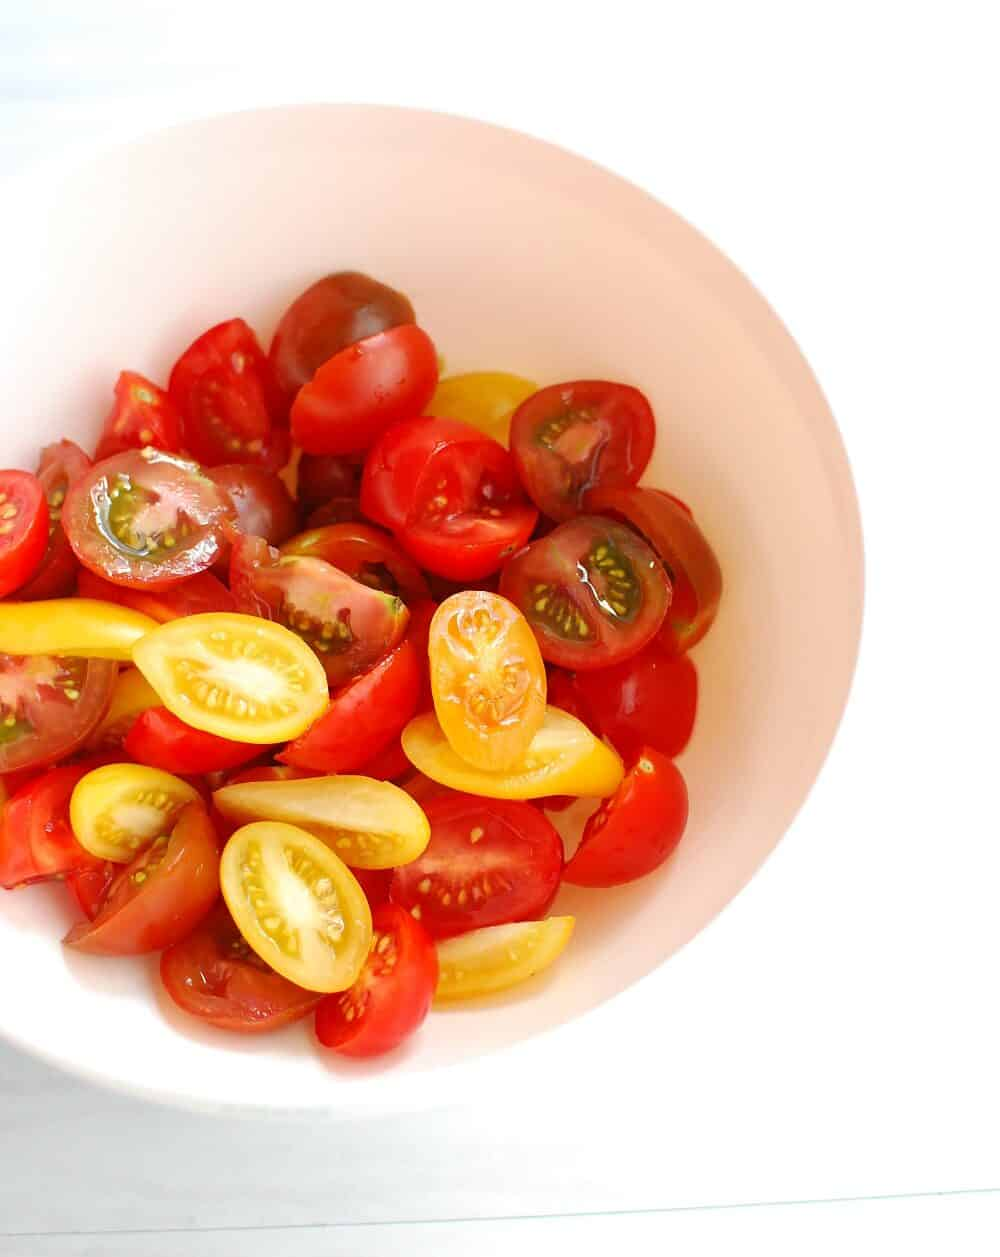 A bowl full of sliced cherry tomatoes